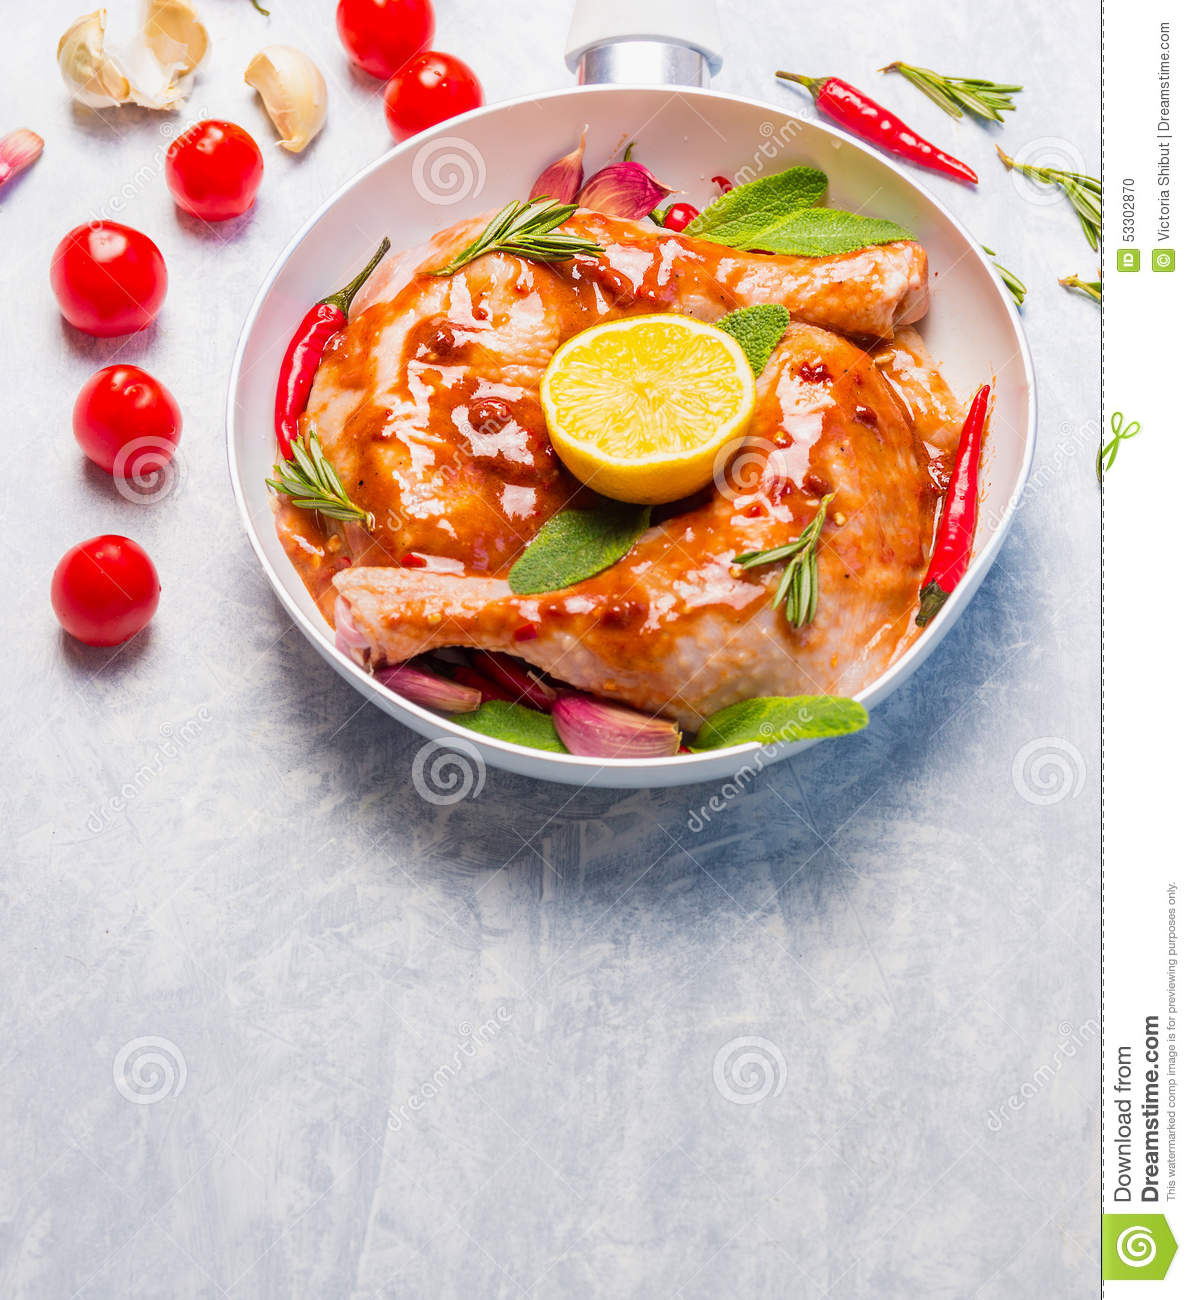 Chicken Legs With Hot Red Spicy Marinade, Lemoon And Sage